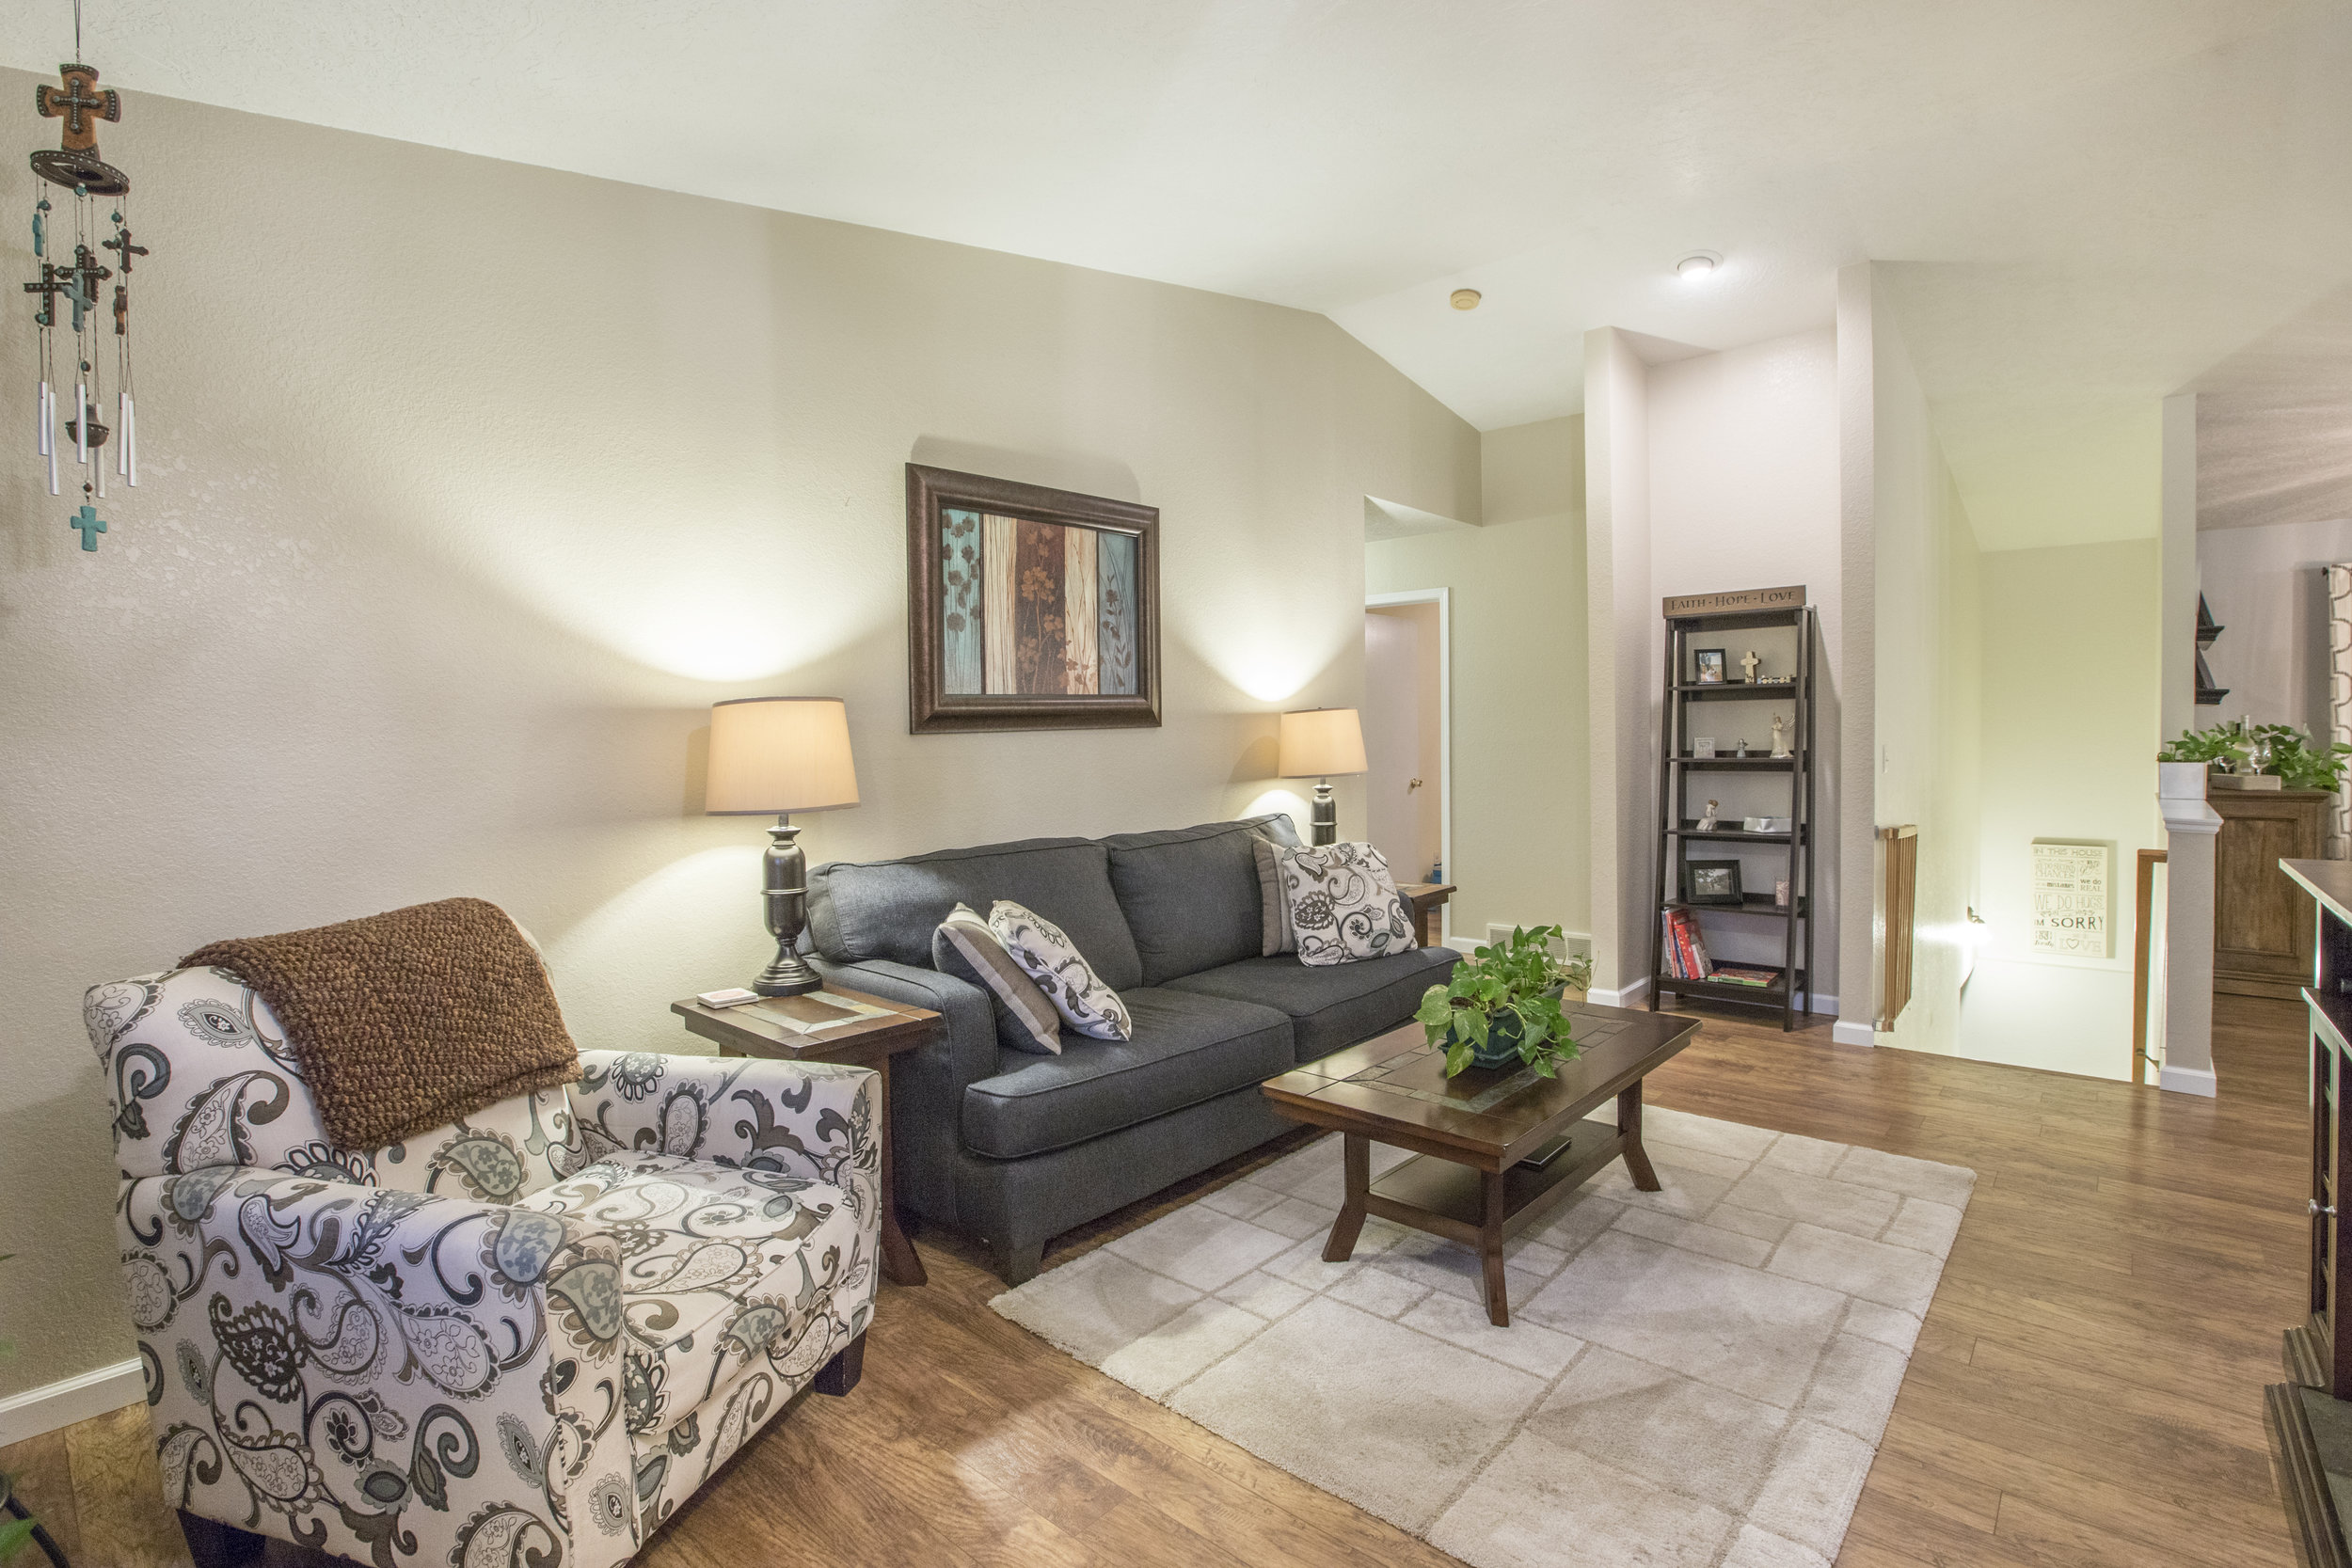 4946W2ndSt-LARGE-32.jpg